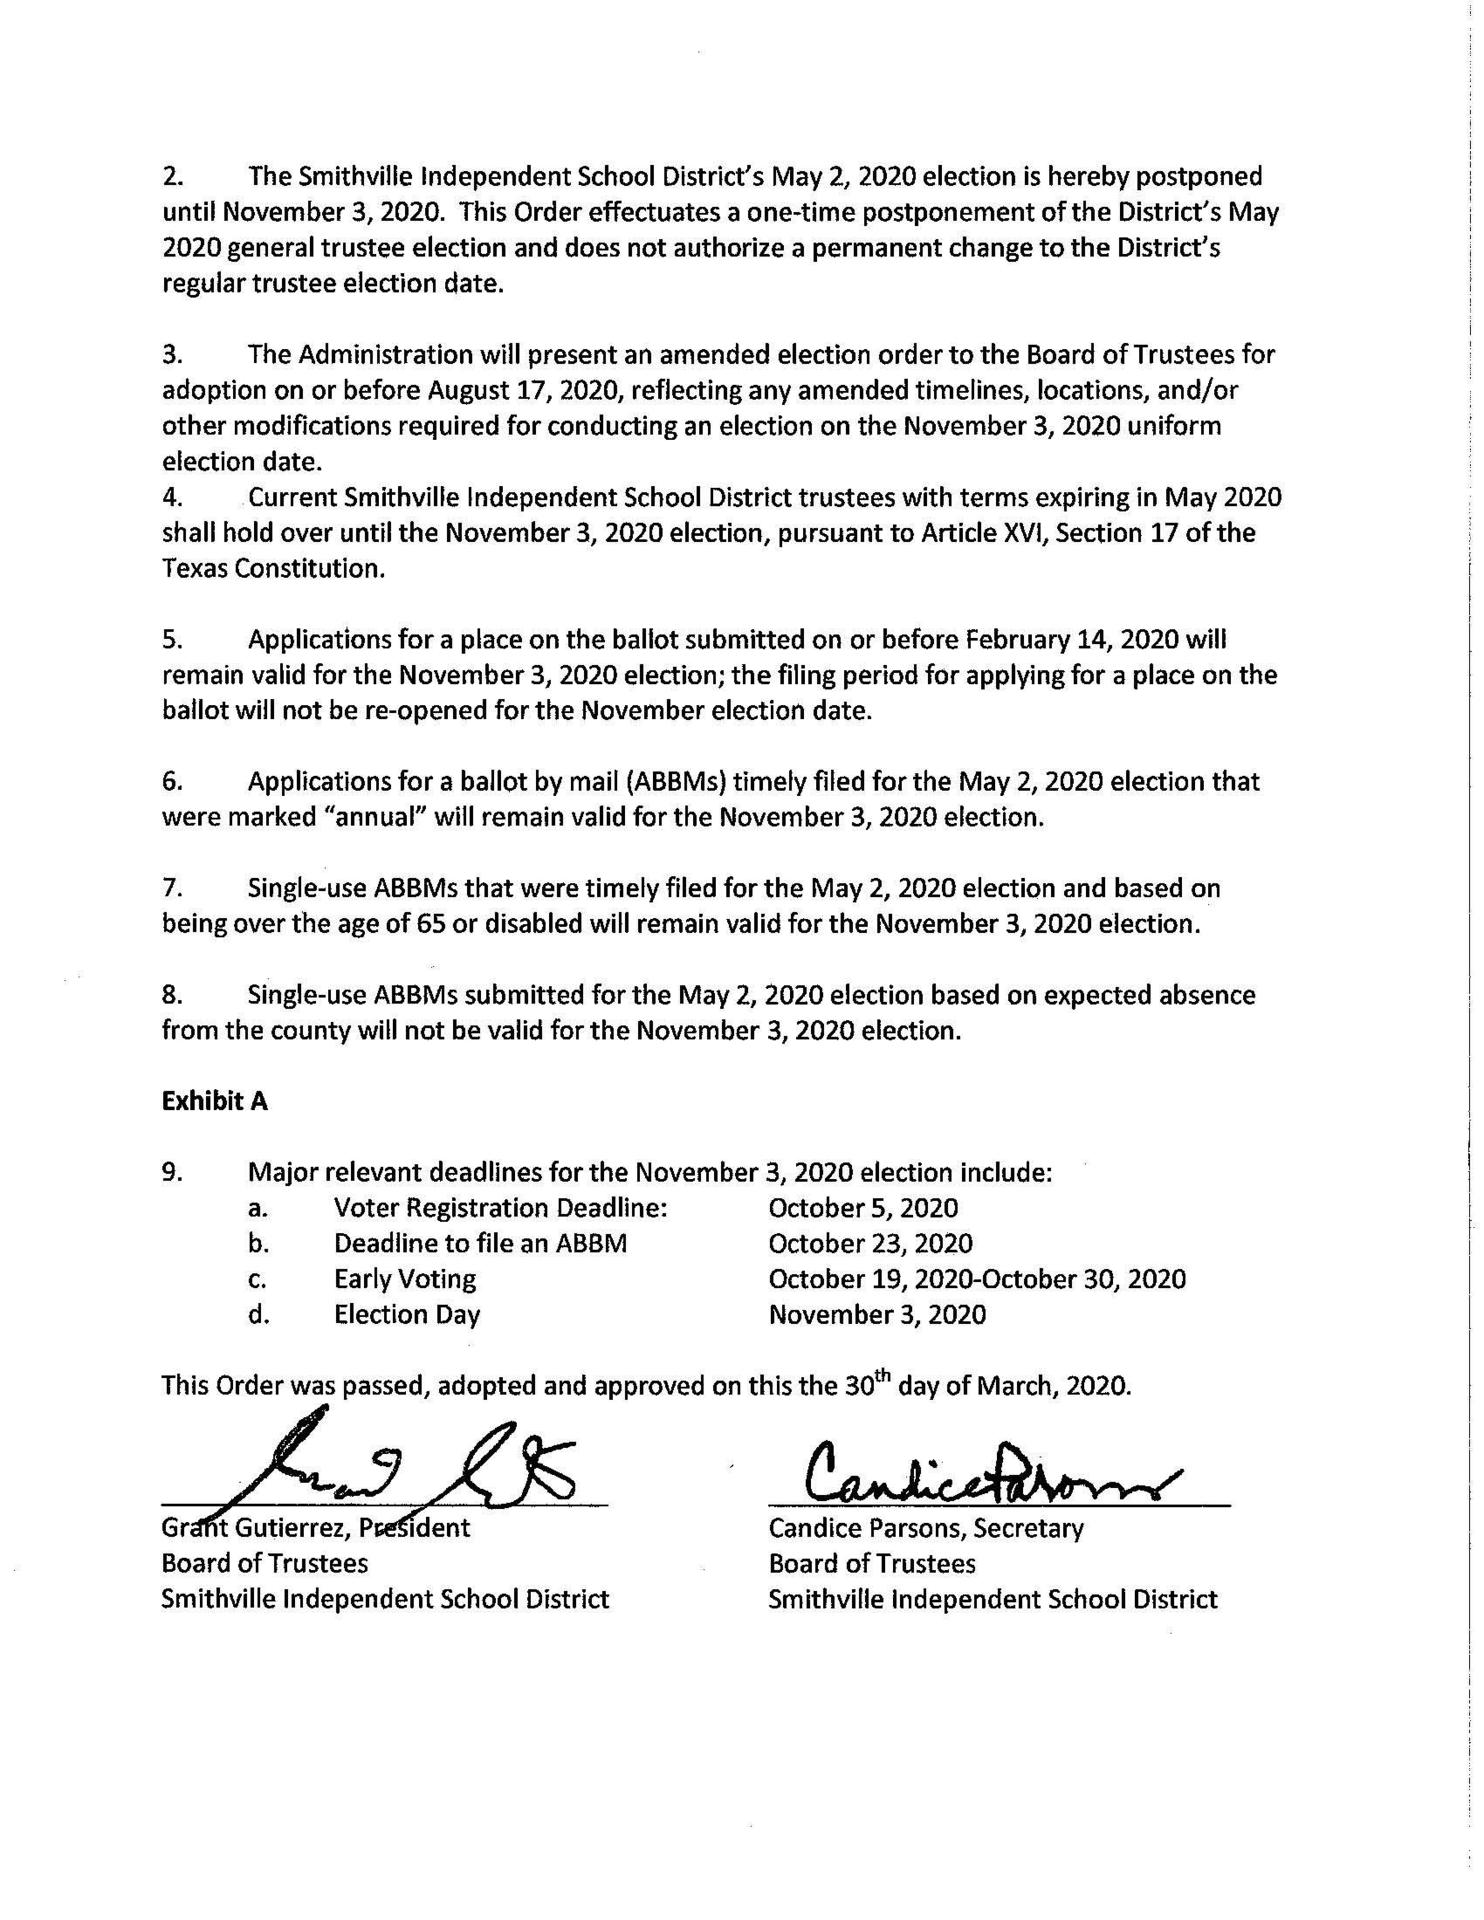 Order of Postponement page 2